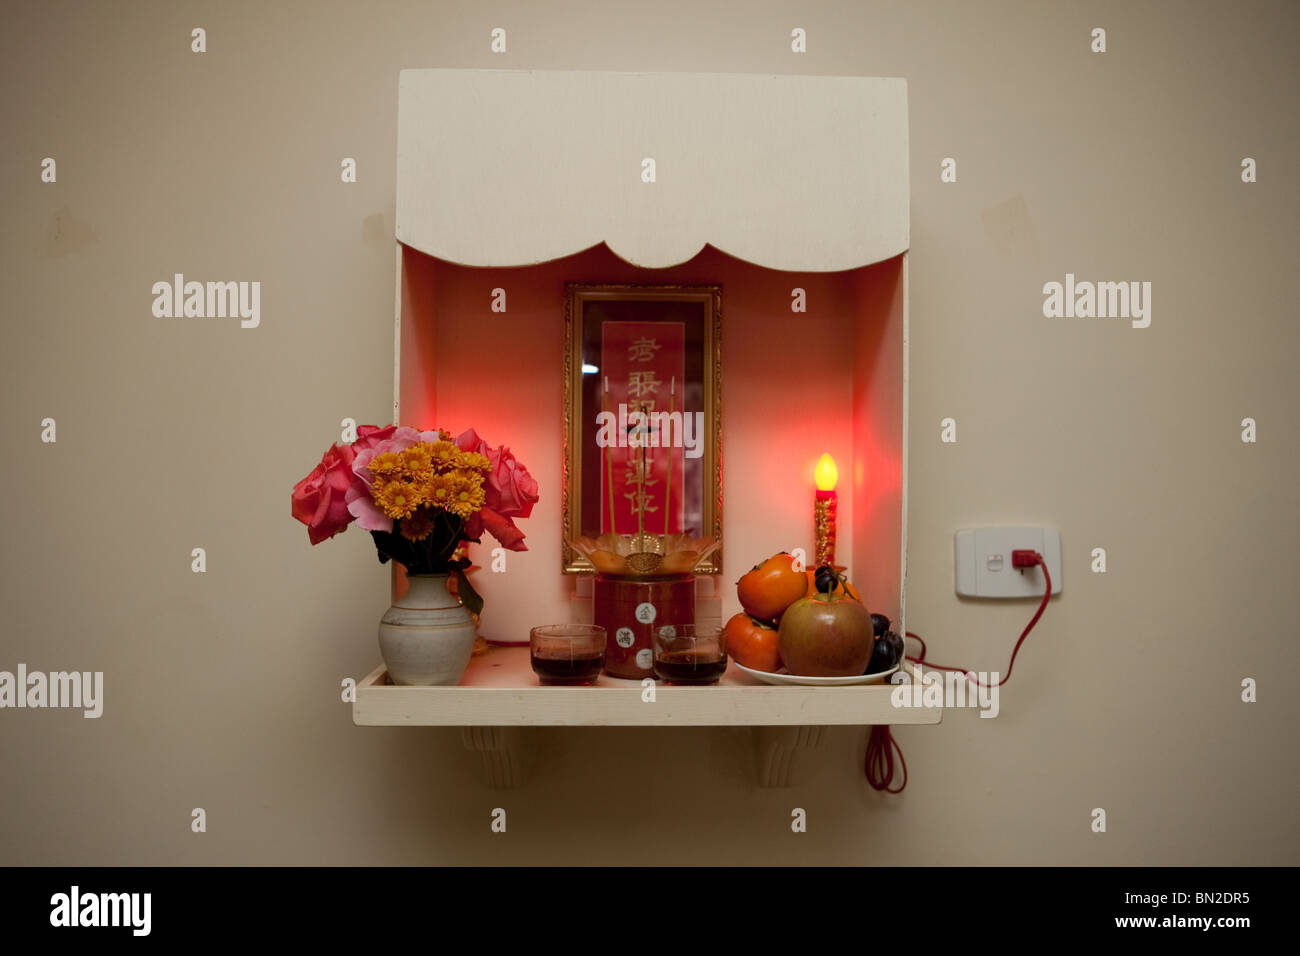 Chinese Home Altar Stock Photos Chinese Home Altar Stock Images